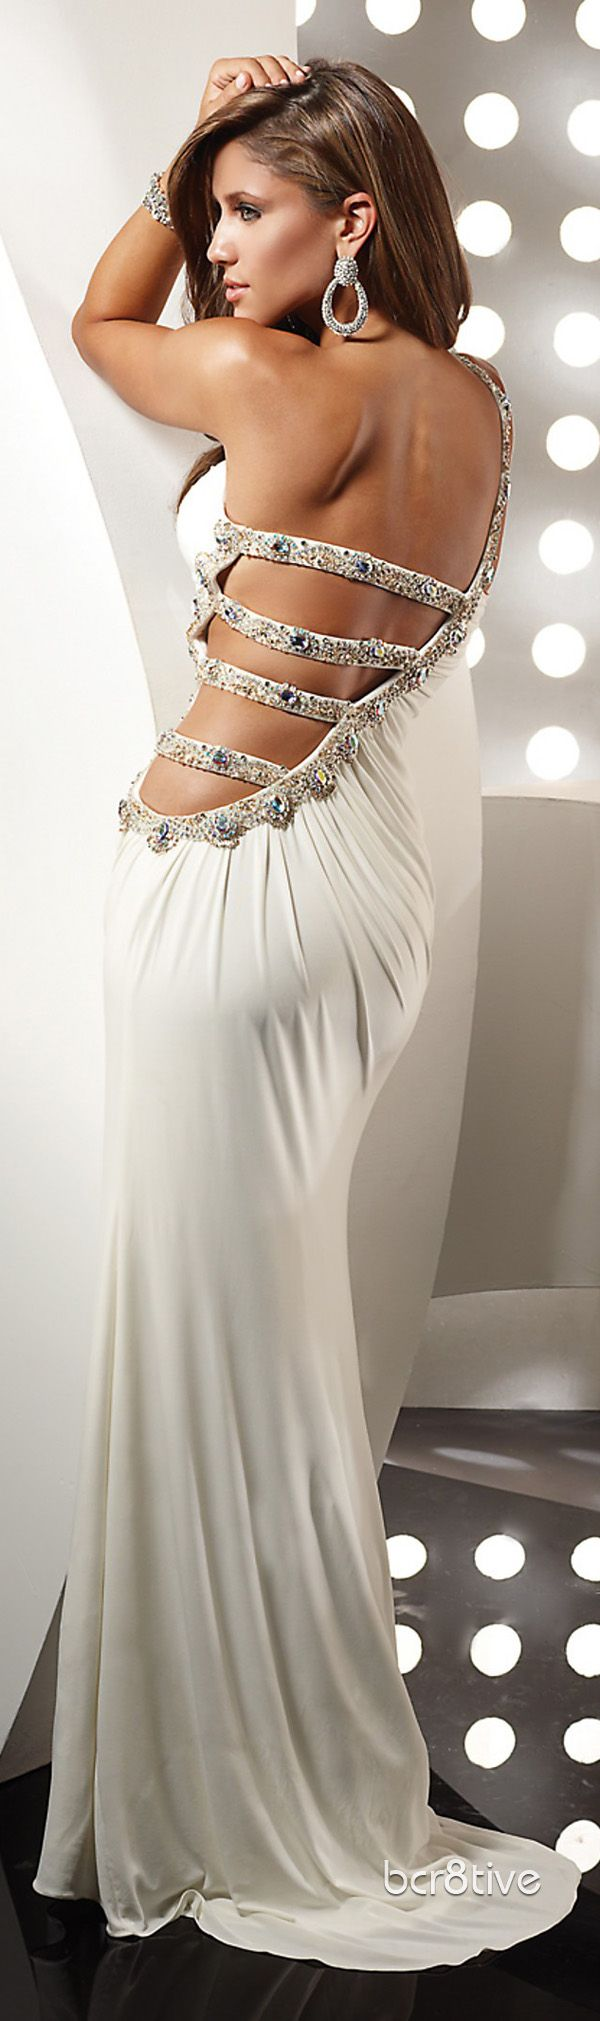 Jasz couture prom dresses style sex and the city pinterest